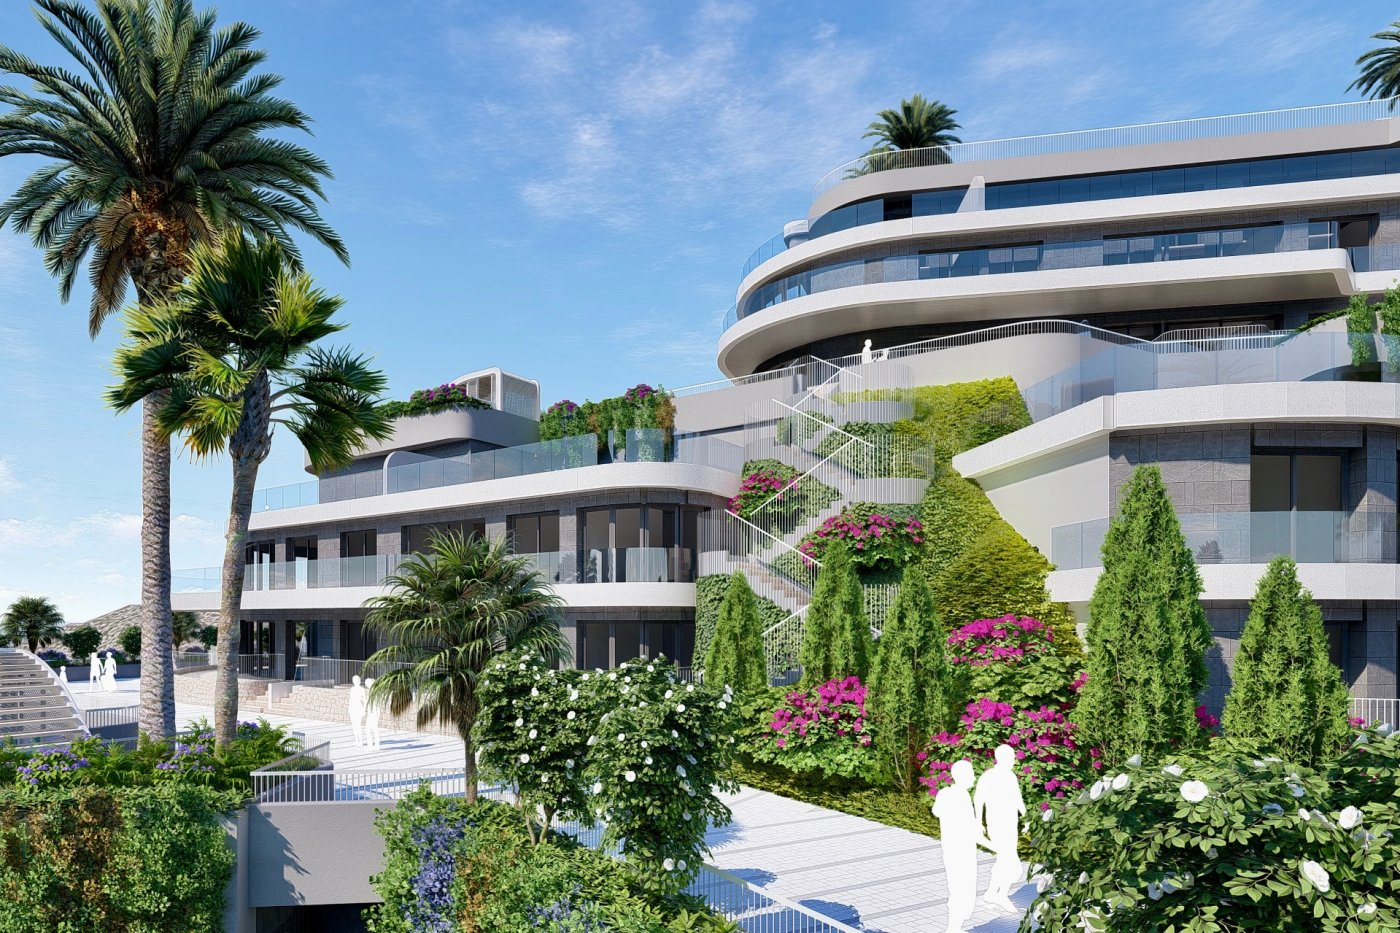 Gallery Image 18 of Phenomenal views, southeast facing 3 bed apartment with 29 m2 terrasse